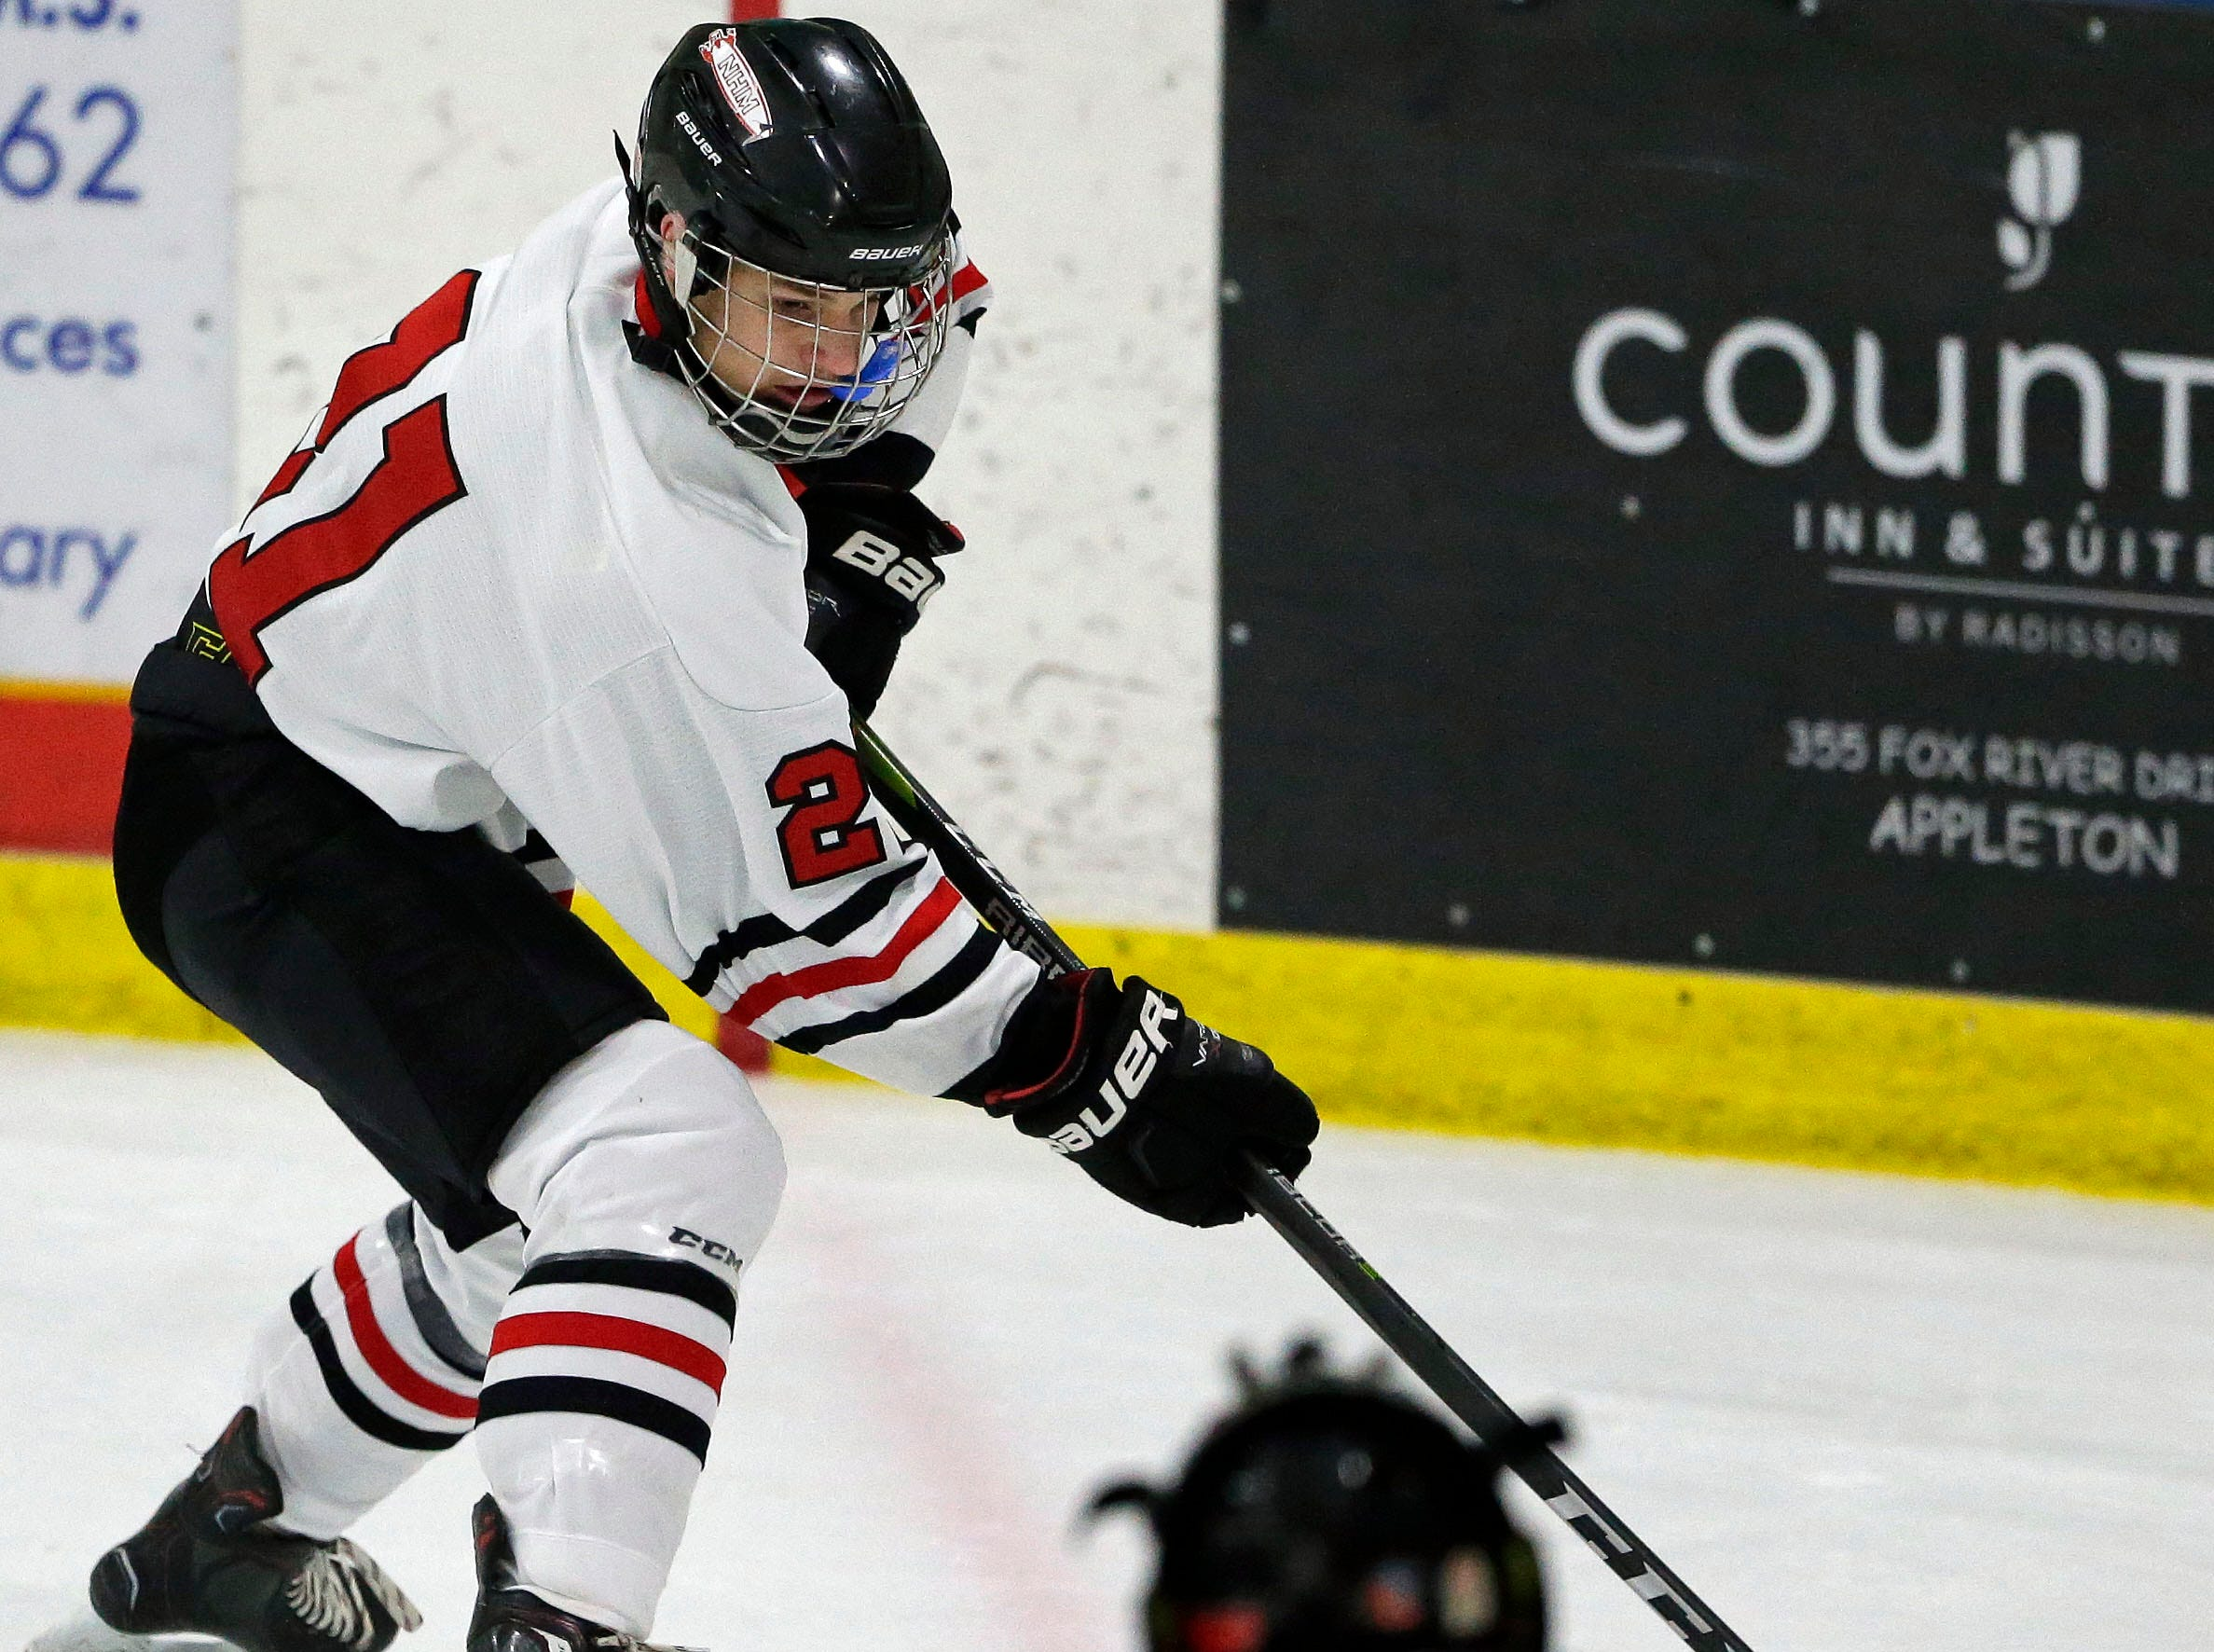 Tate Cottrell of Neenah/Hortonville/Menasha looks to pass against Oshkosh during a Badgerland Conference hockey game Tuesday, December 4, 2018, at Tri-County Ice Arena in Fox Crossing, Wis.Ron Page/USA TODAY NETWORK-Wisconsin